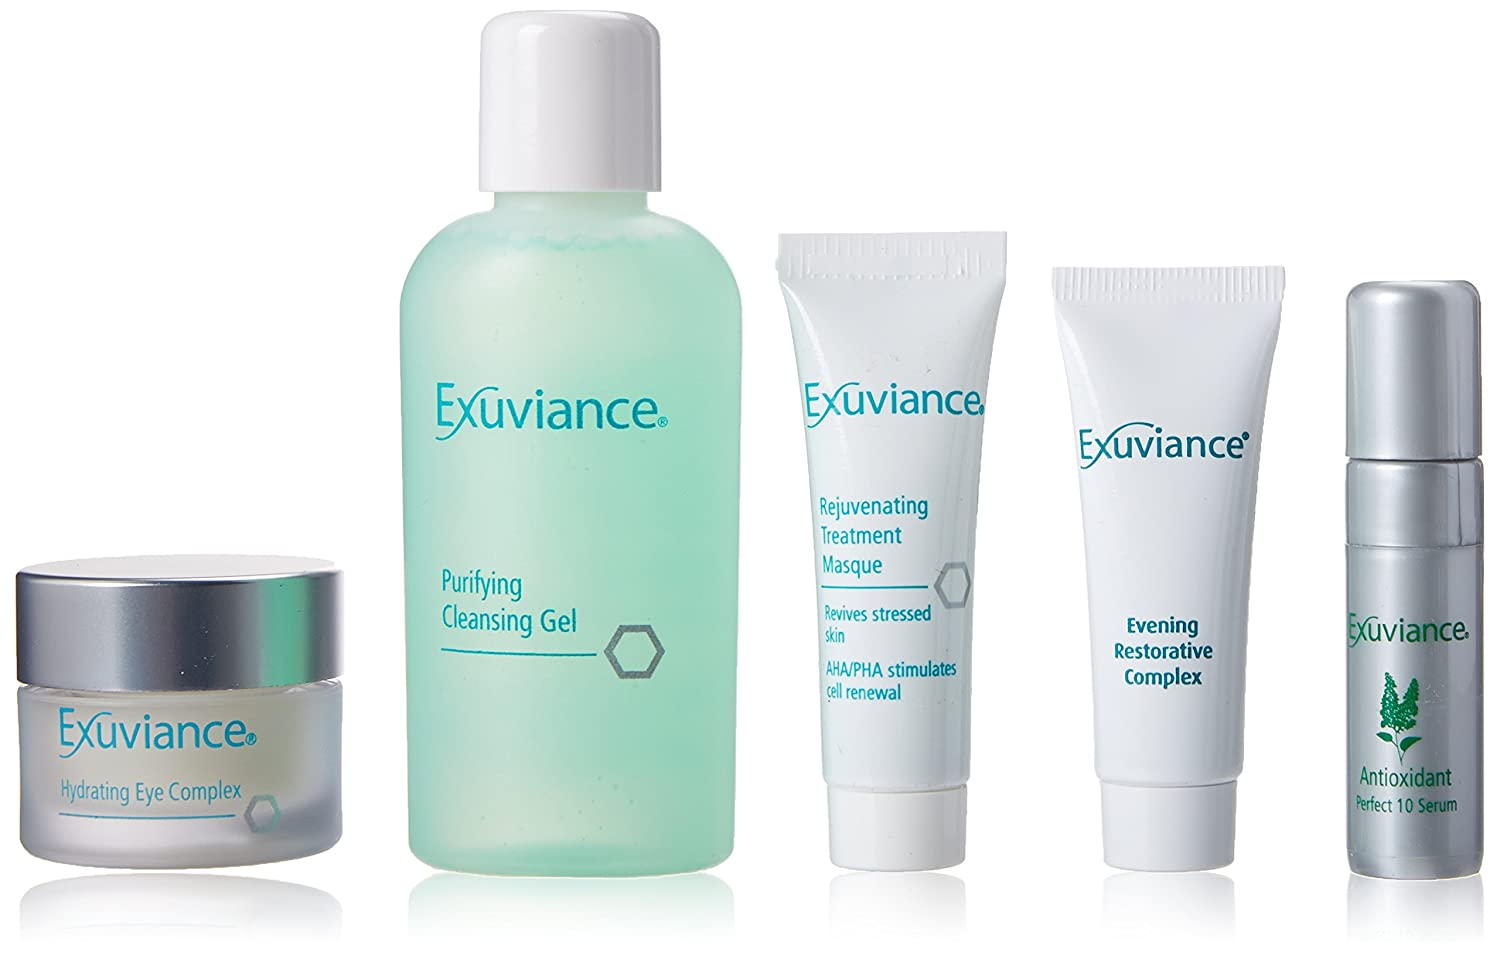 exuviance travel kit